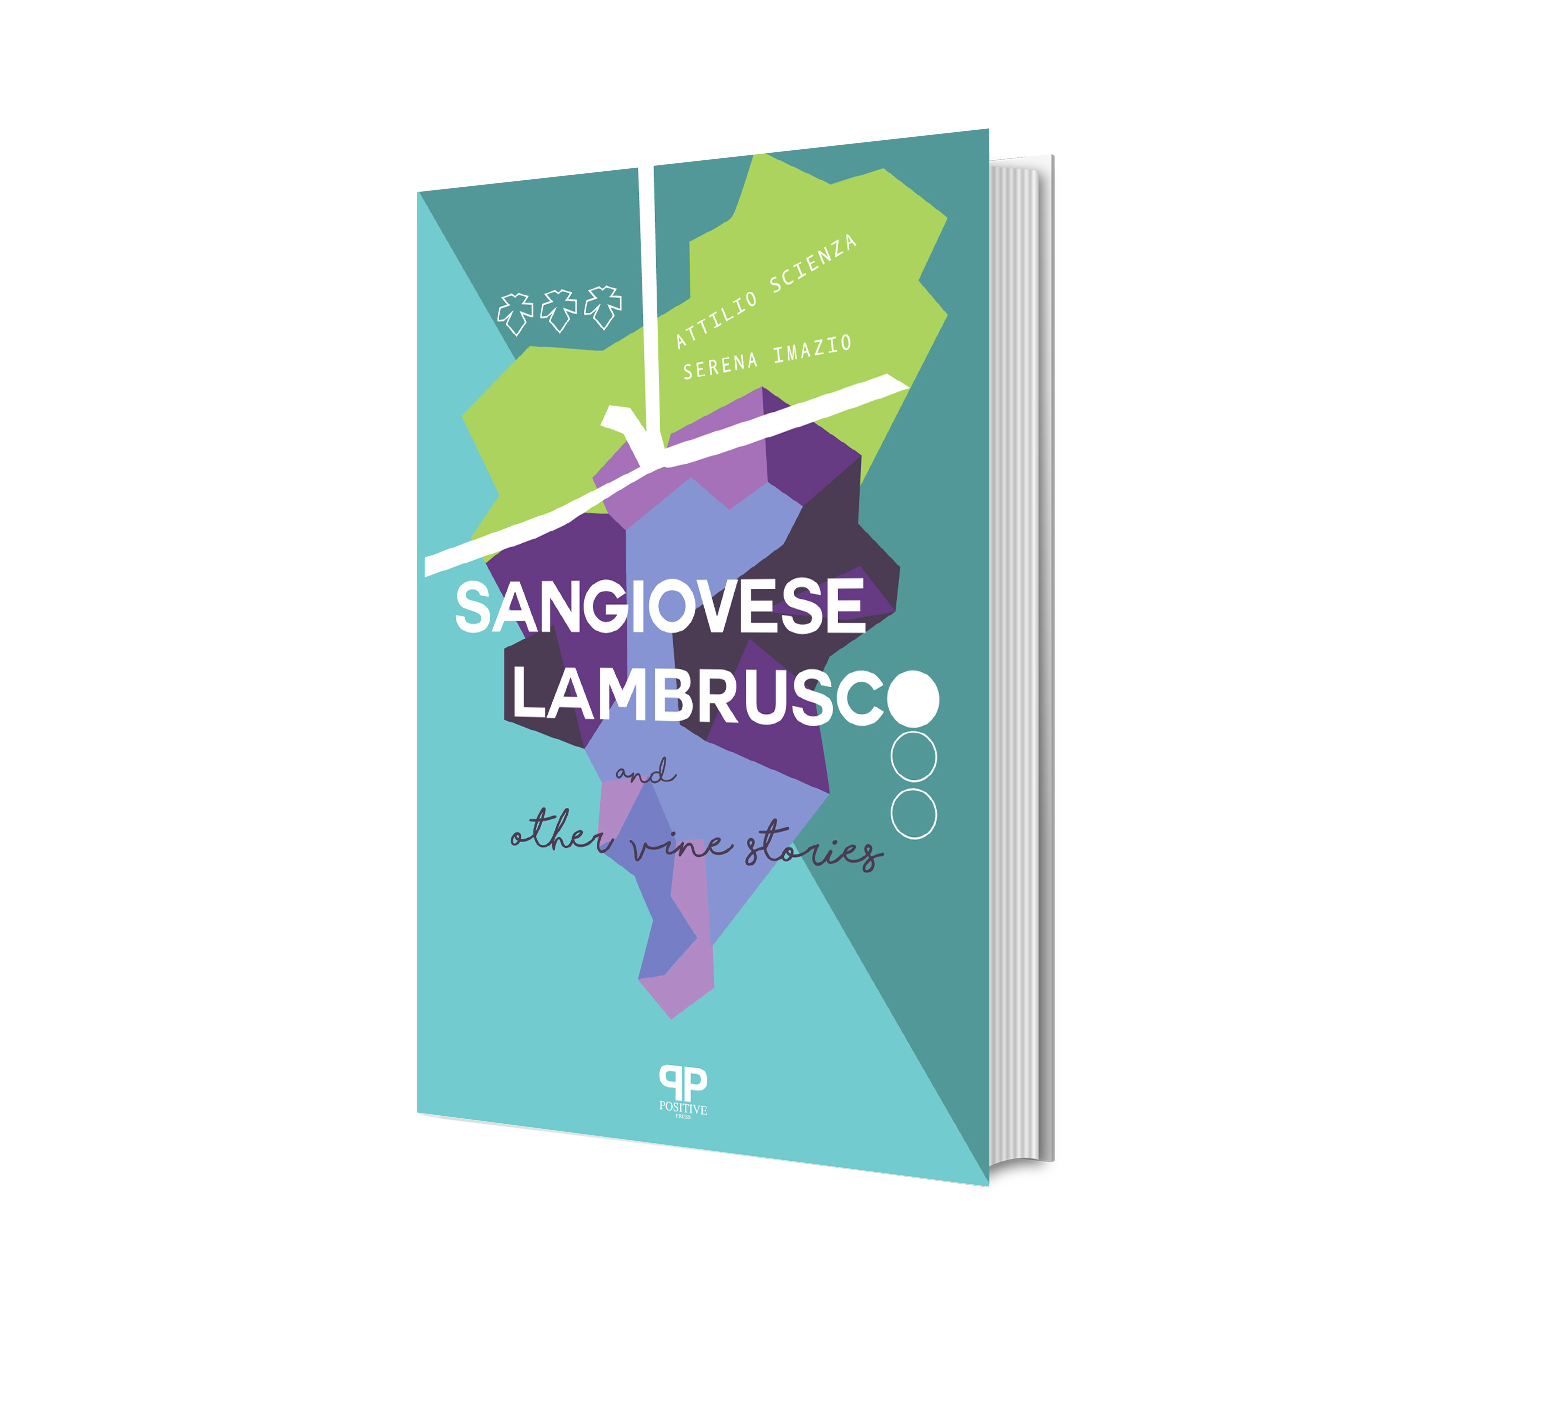 Sangiovese e Lambrusco and other wine stories